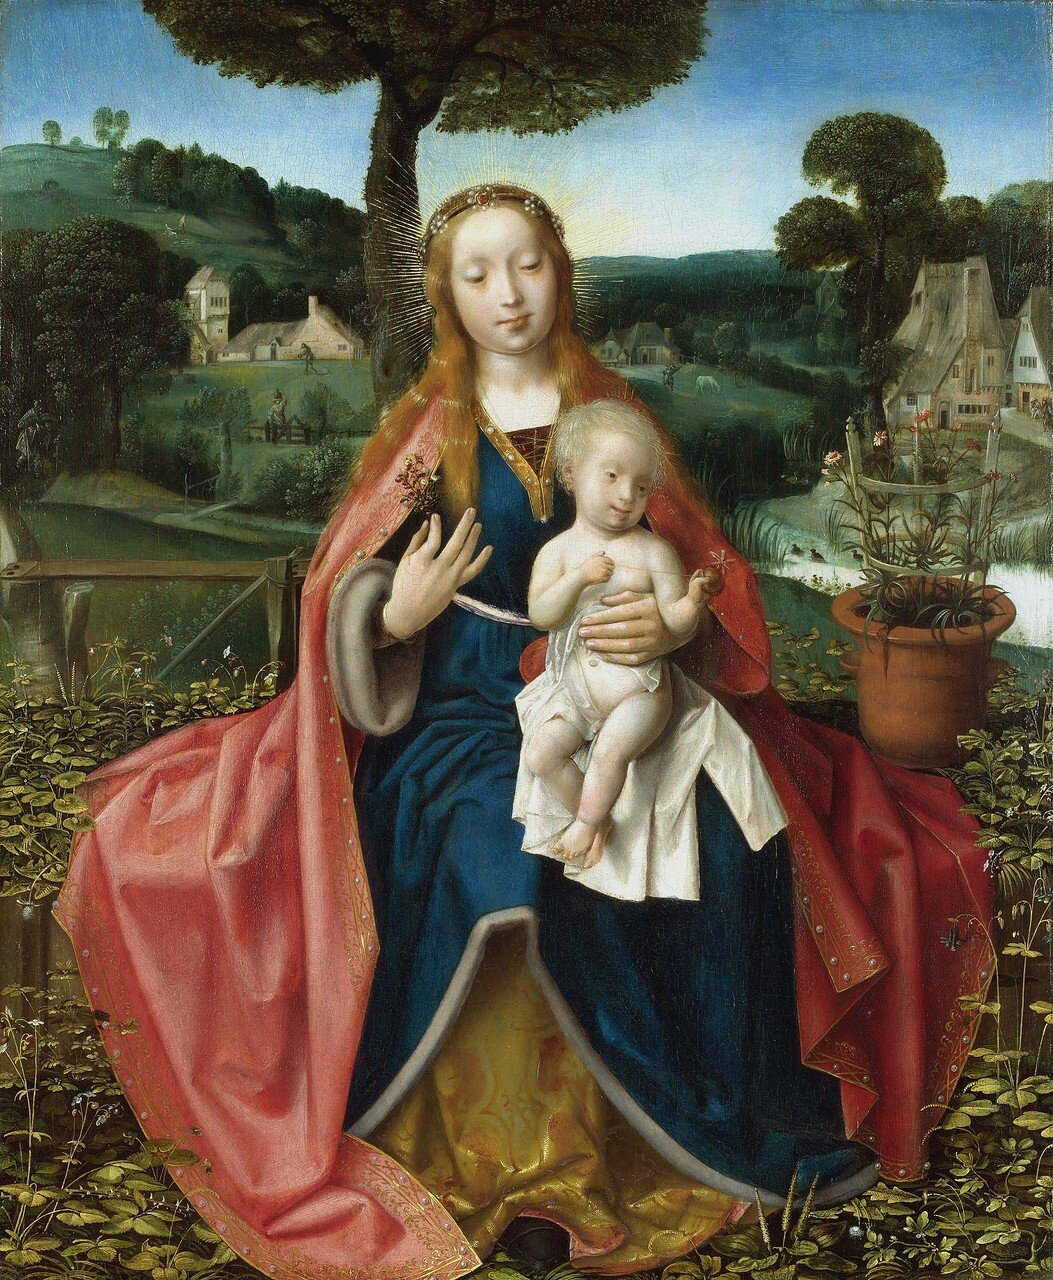 Attributed_to_Jan_Provoost_-_The_Virgin_and_Child_in_a_Landscape_-_Google_Art_Project.jpg